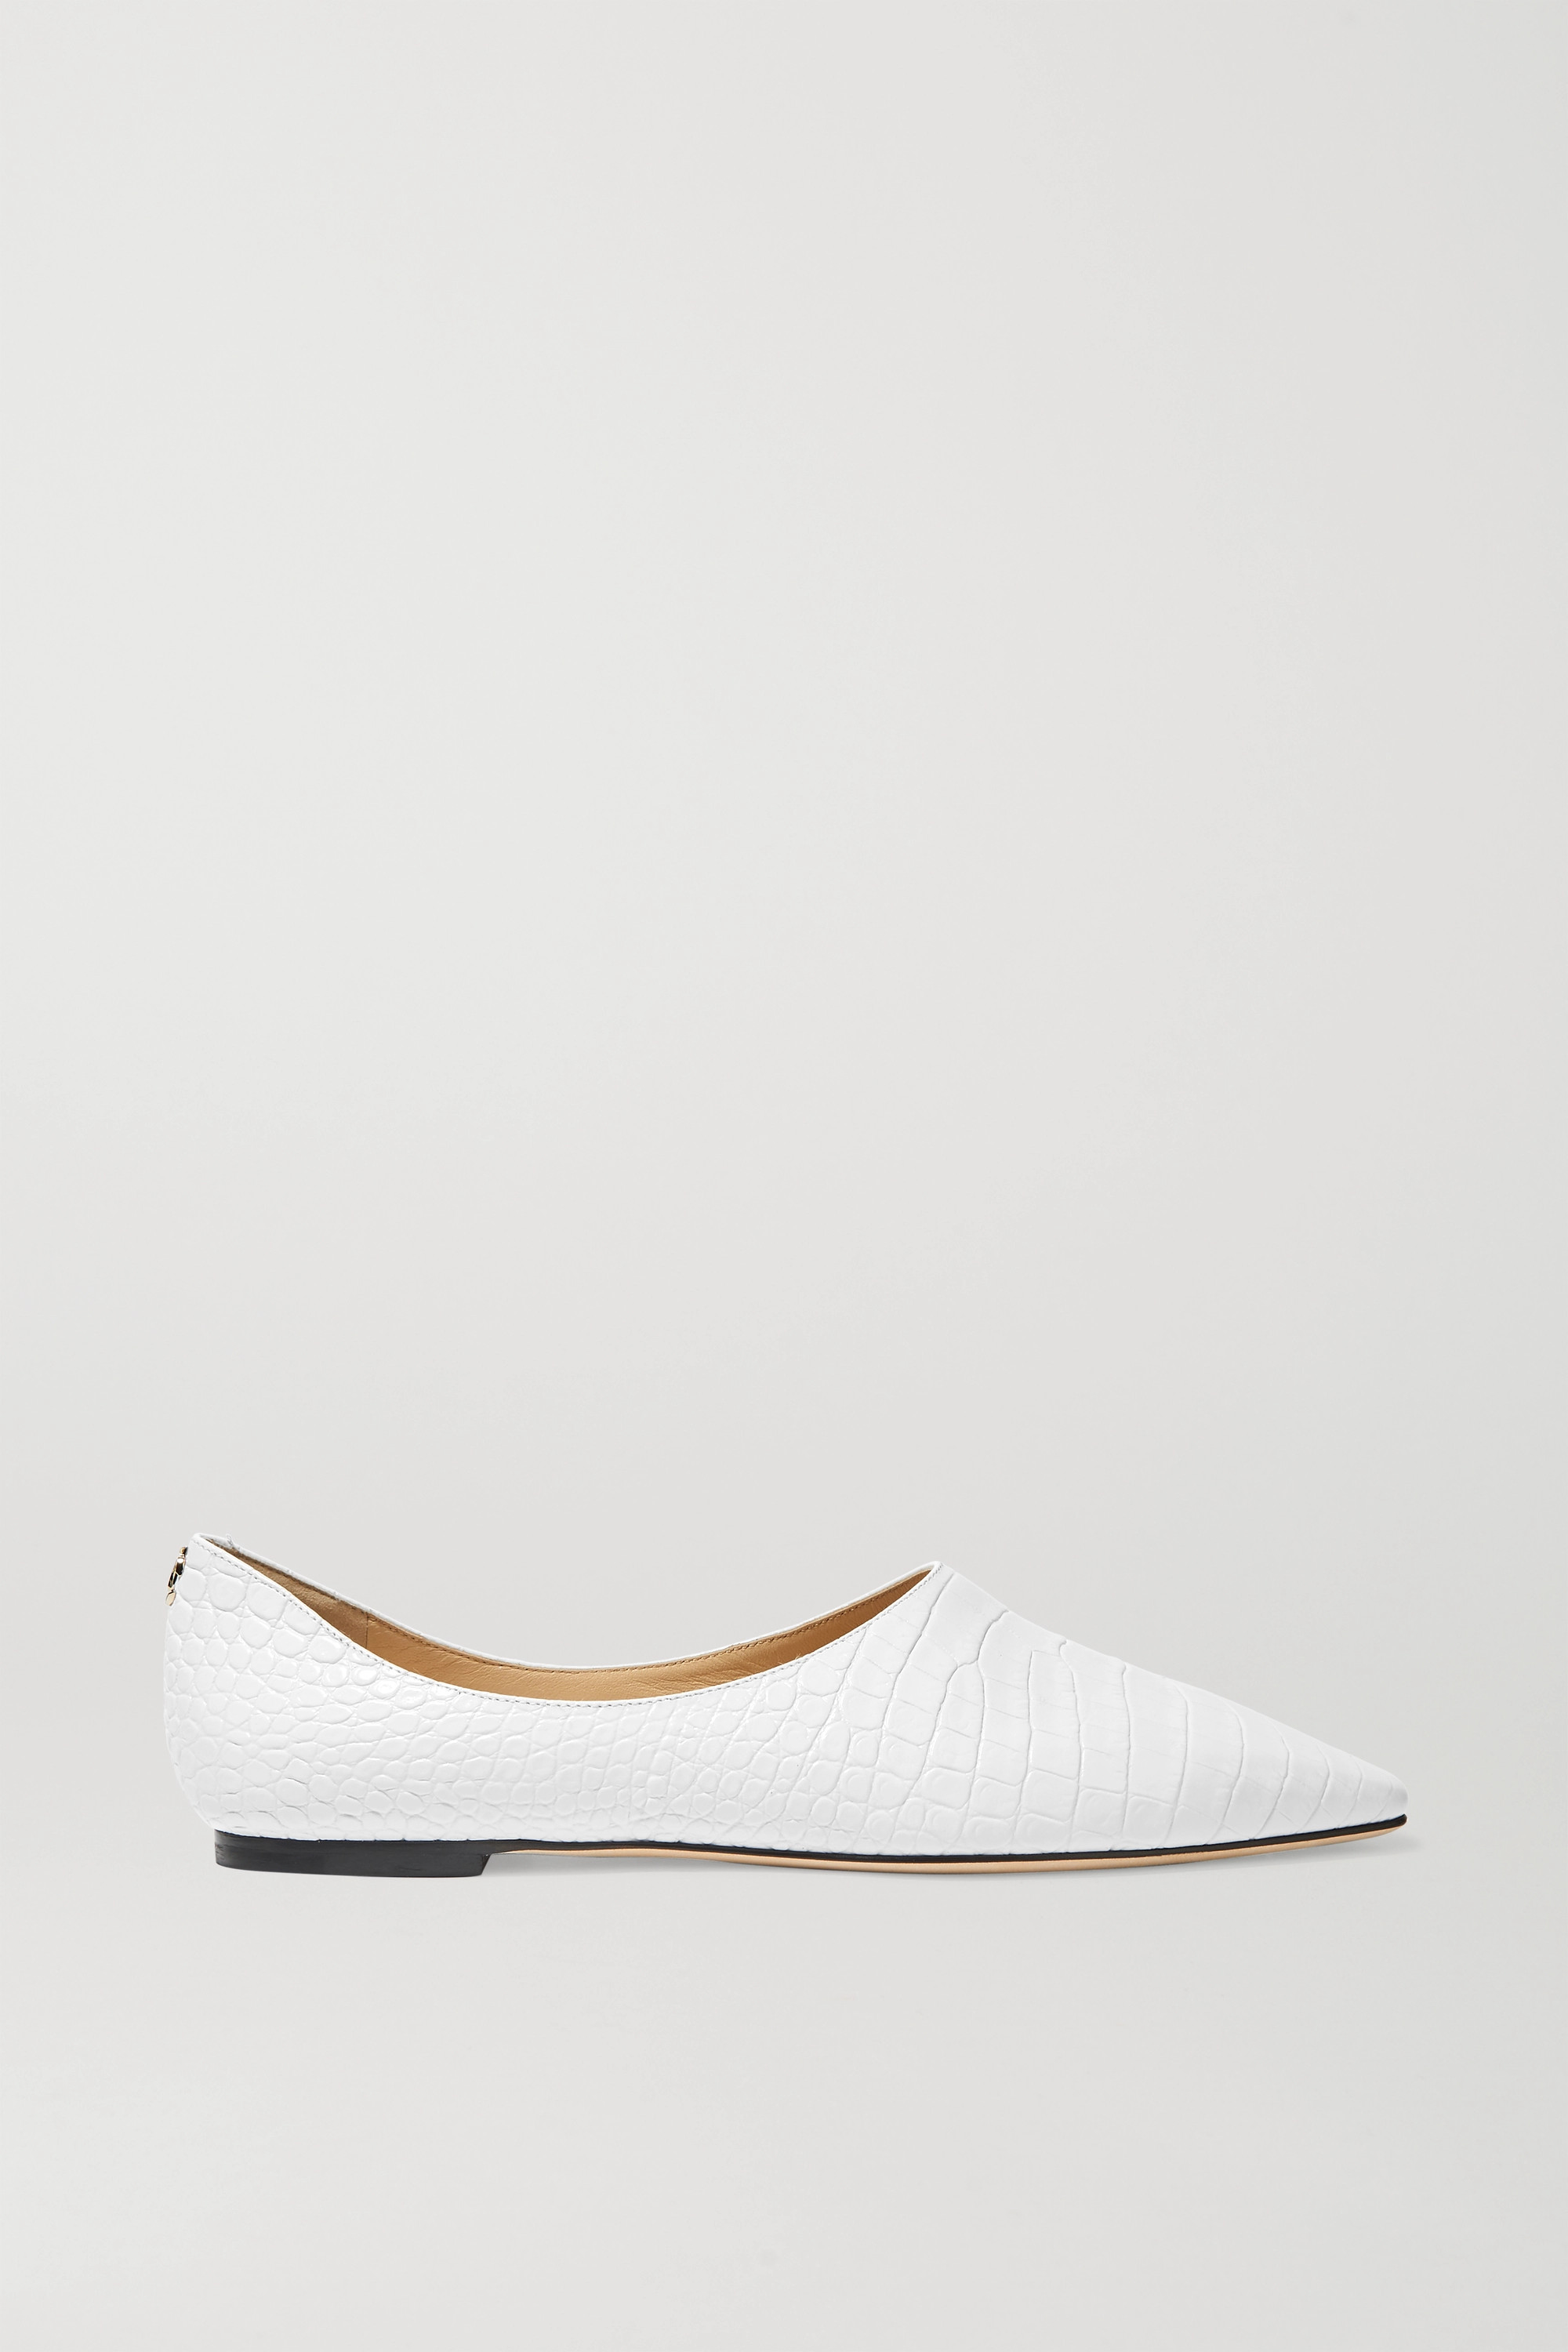 Jimmy Choo Joselyn croc-effect leather ballet flats